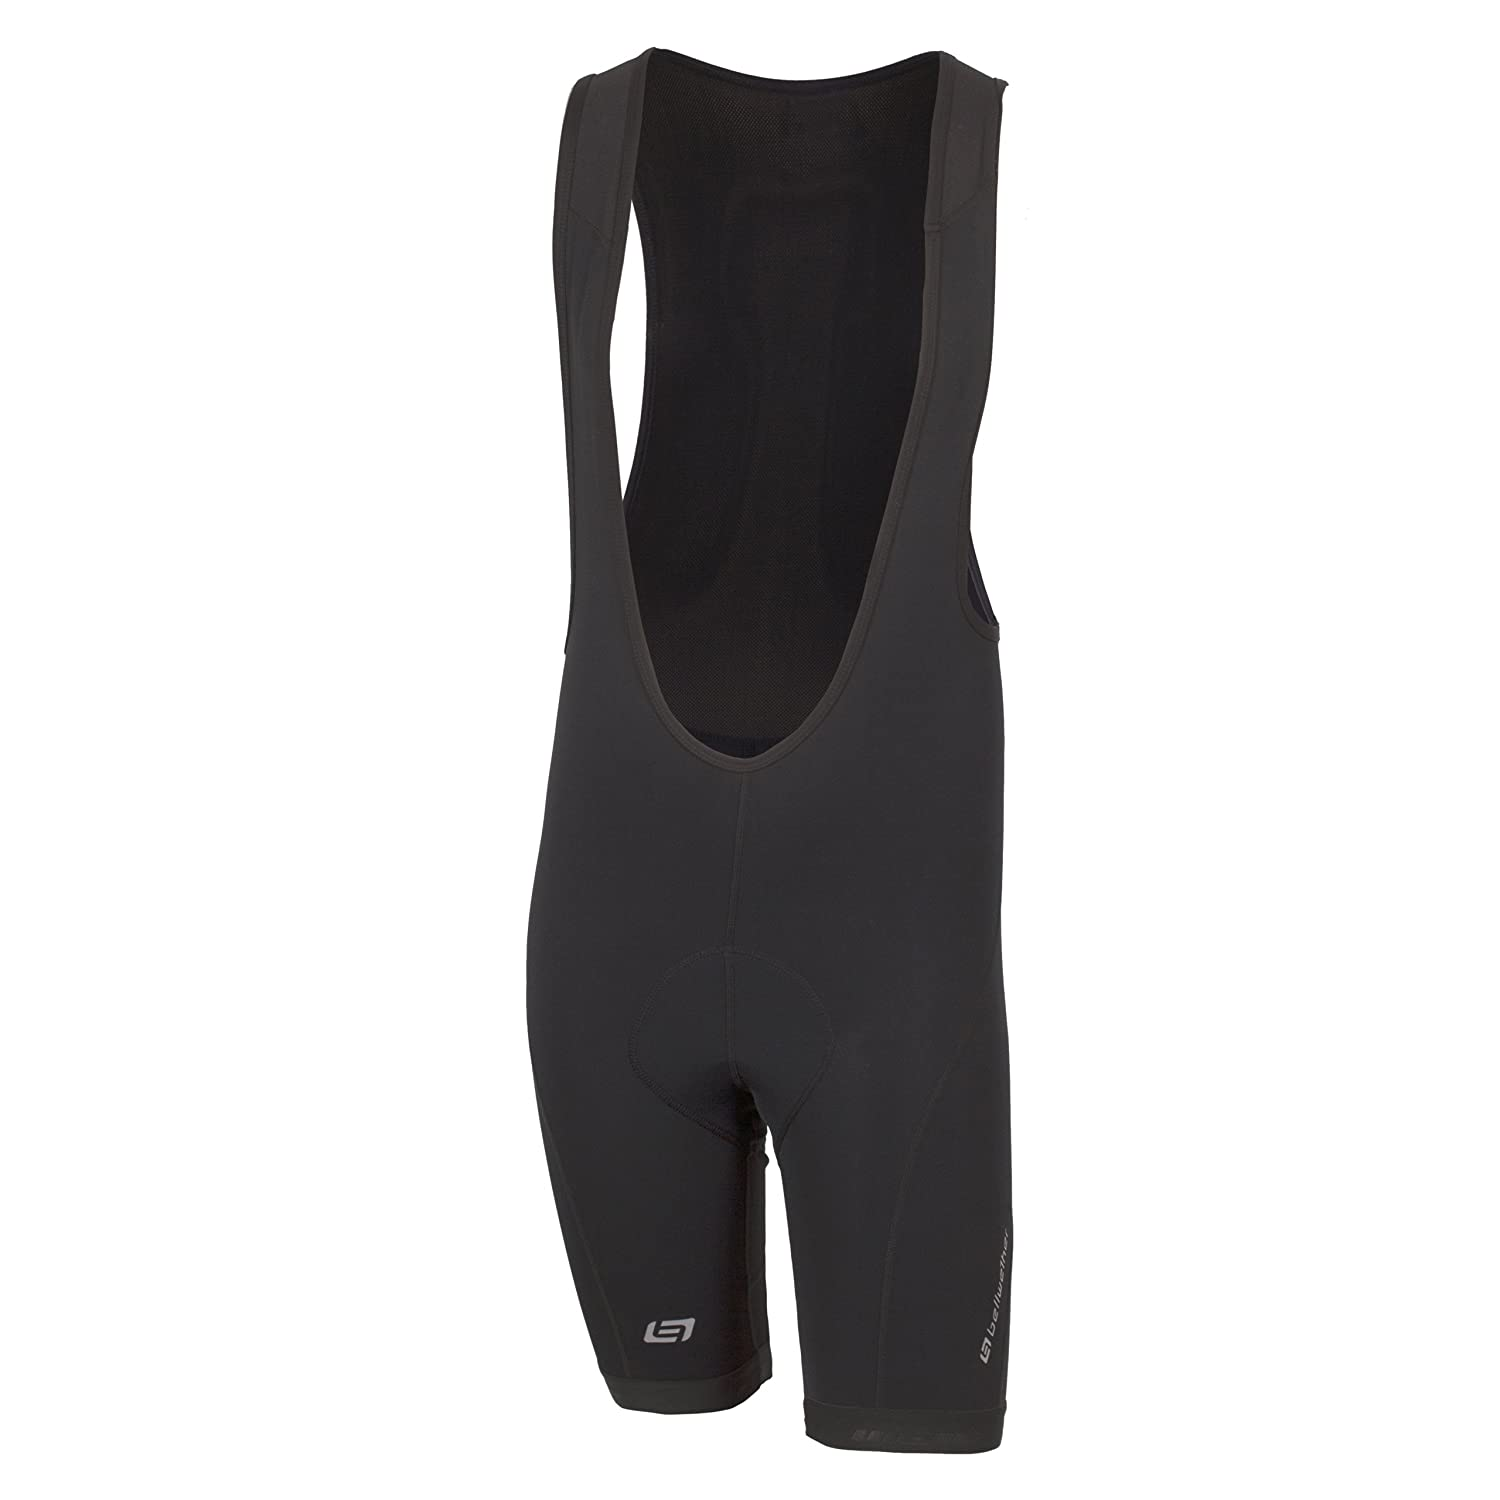 Protective Bellwether Herren Trägerhose kurz Thermaldress Bib Short, B-93795